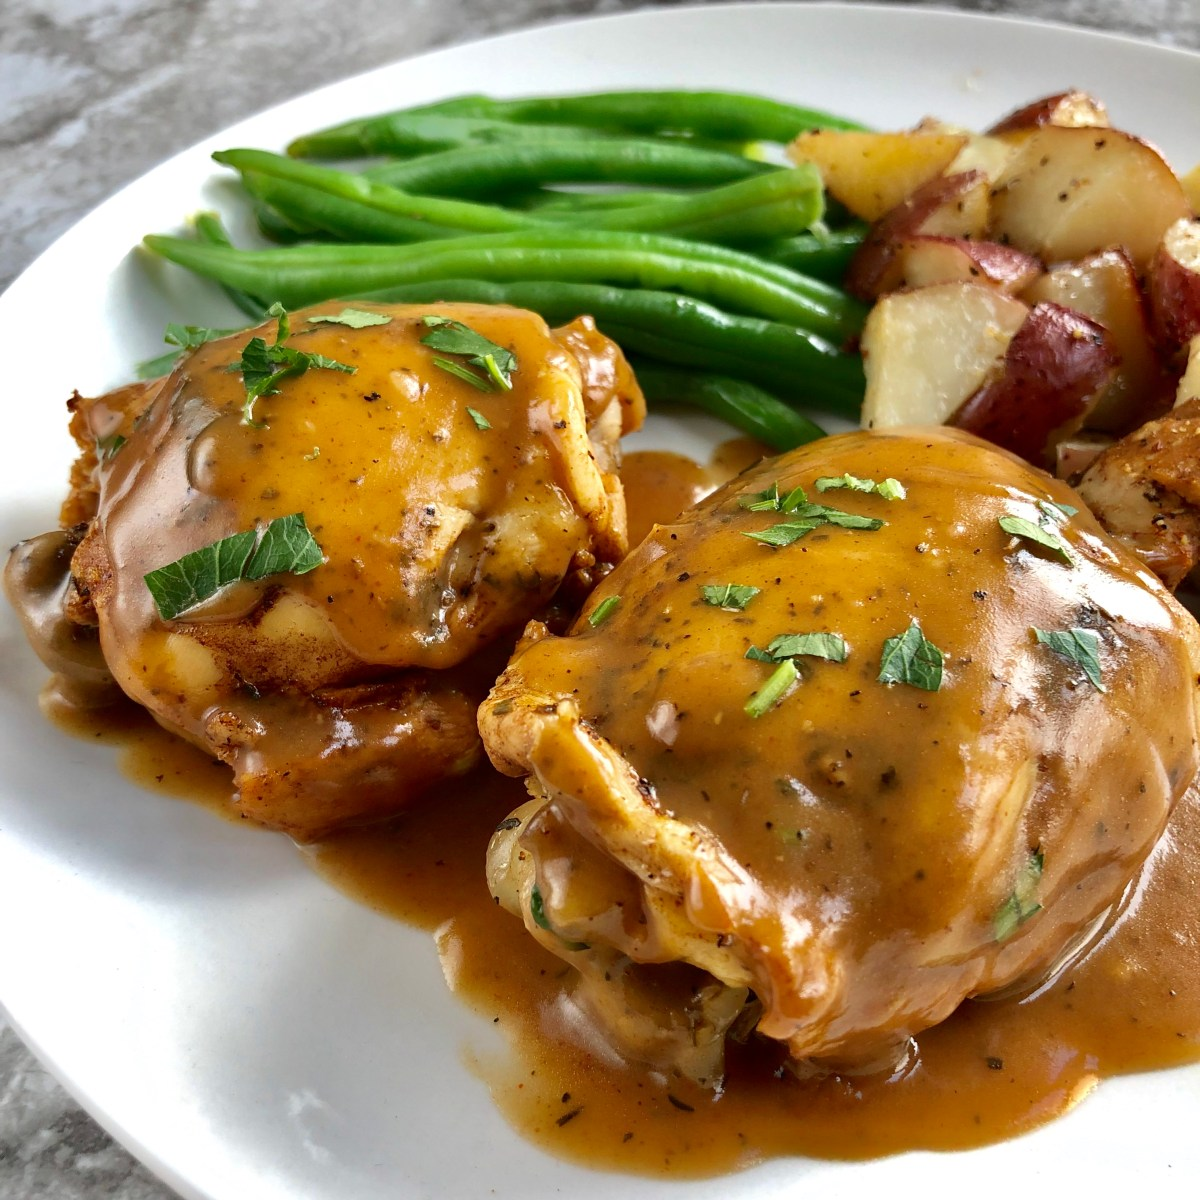 Pressure Cooker Balsamic Chicken Thighs by Happylifeblogspot.com #pressurecookerchicken #chickendinner #balsamicchicken #chickenthighs #pressurecookerrecipes #instantpotrecipes